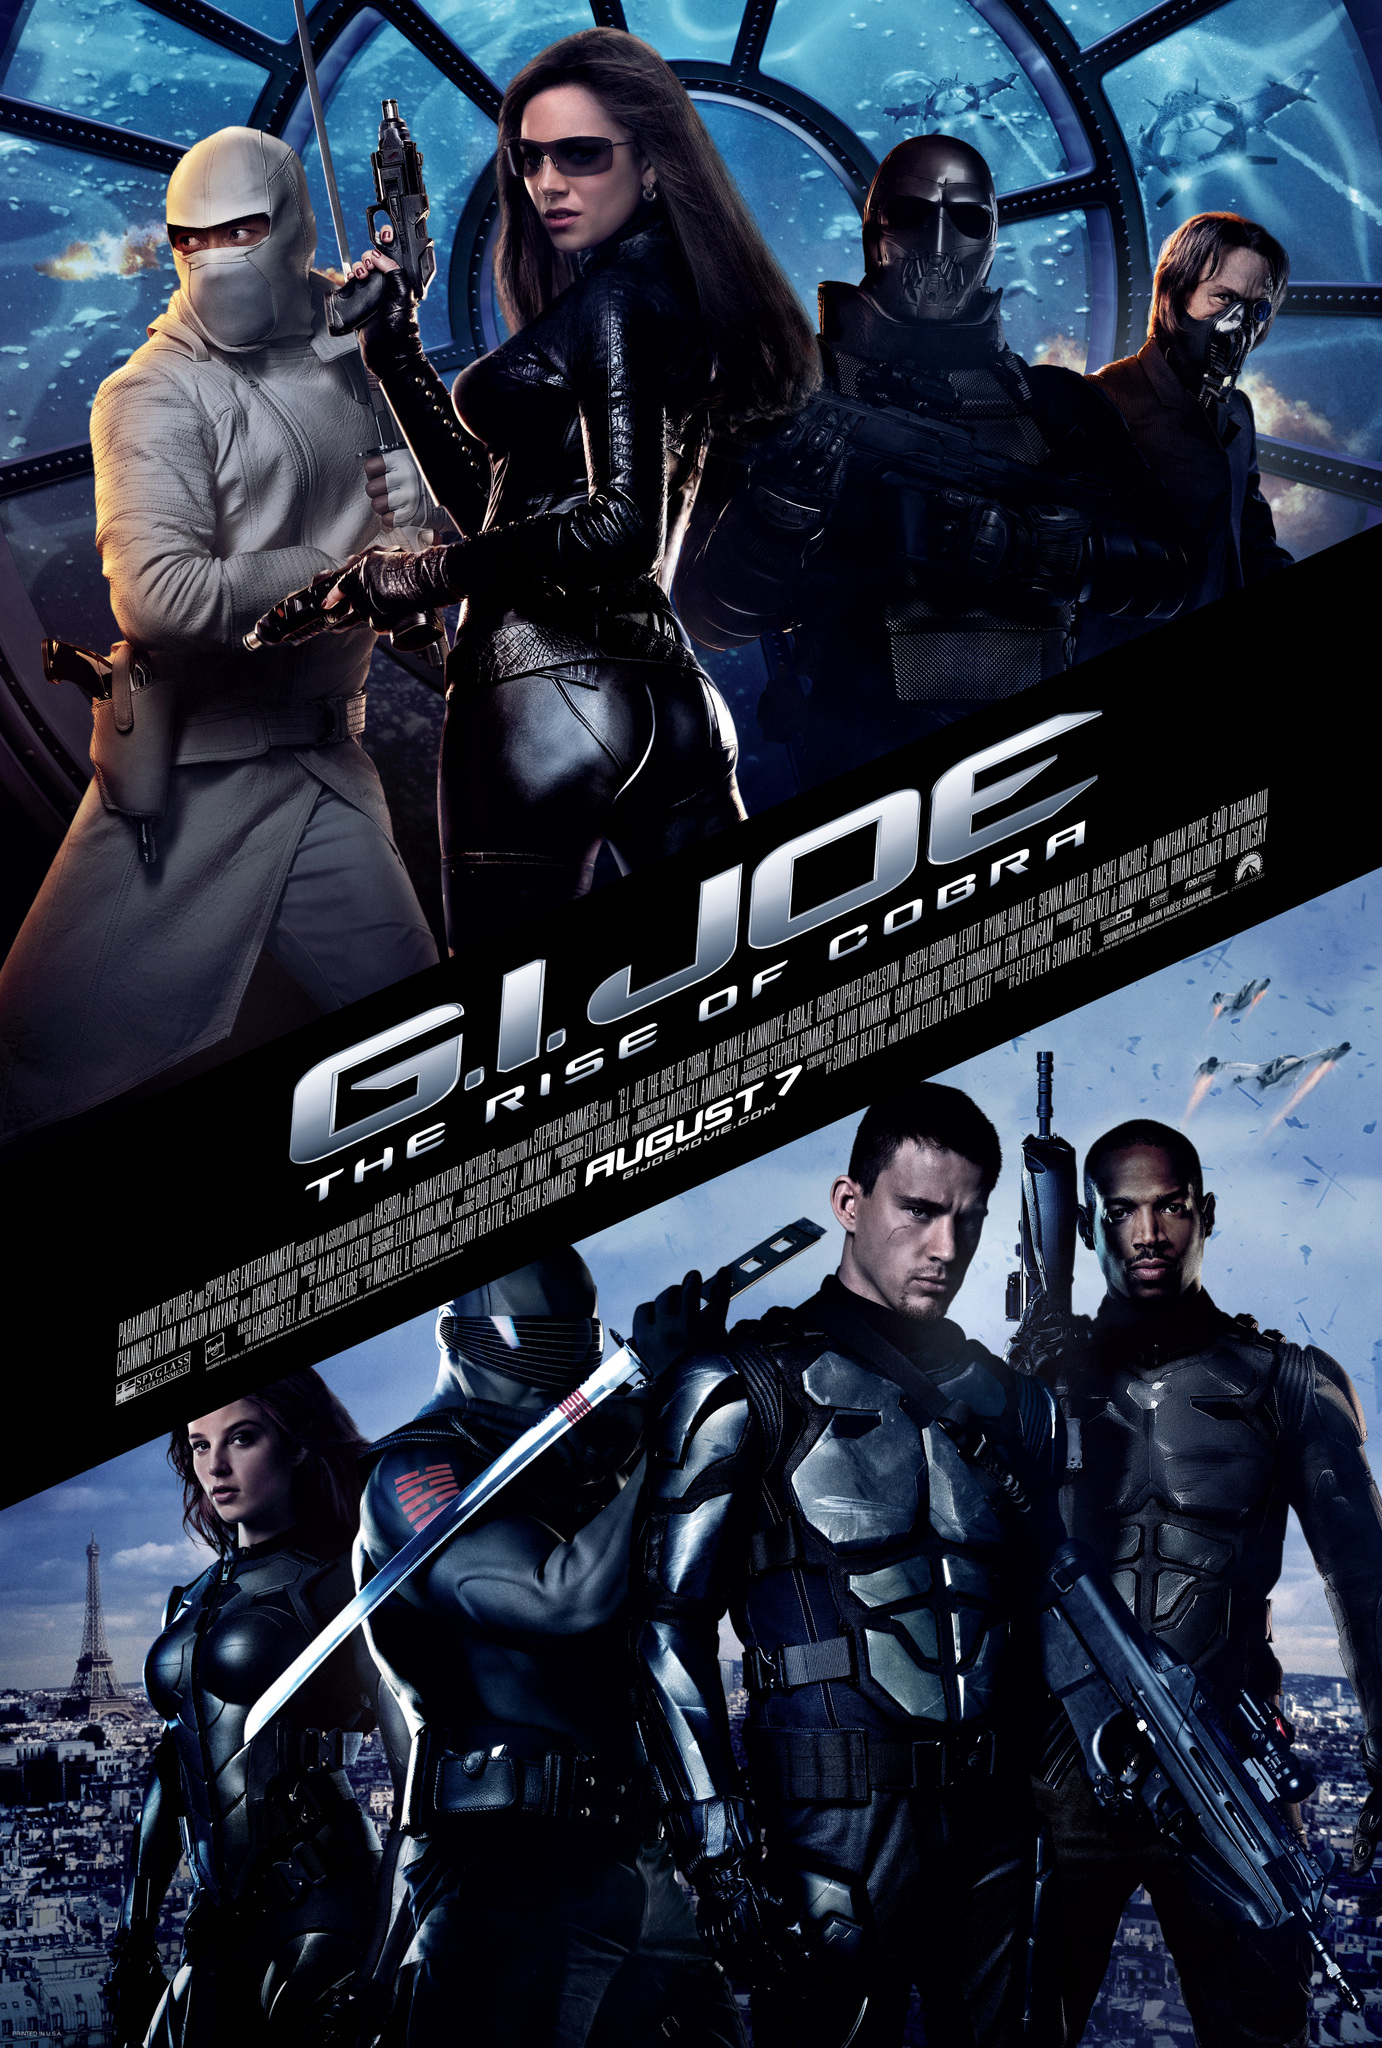 G.I. Joe: The Rise of Cobra Watch Full Movie Free Online